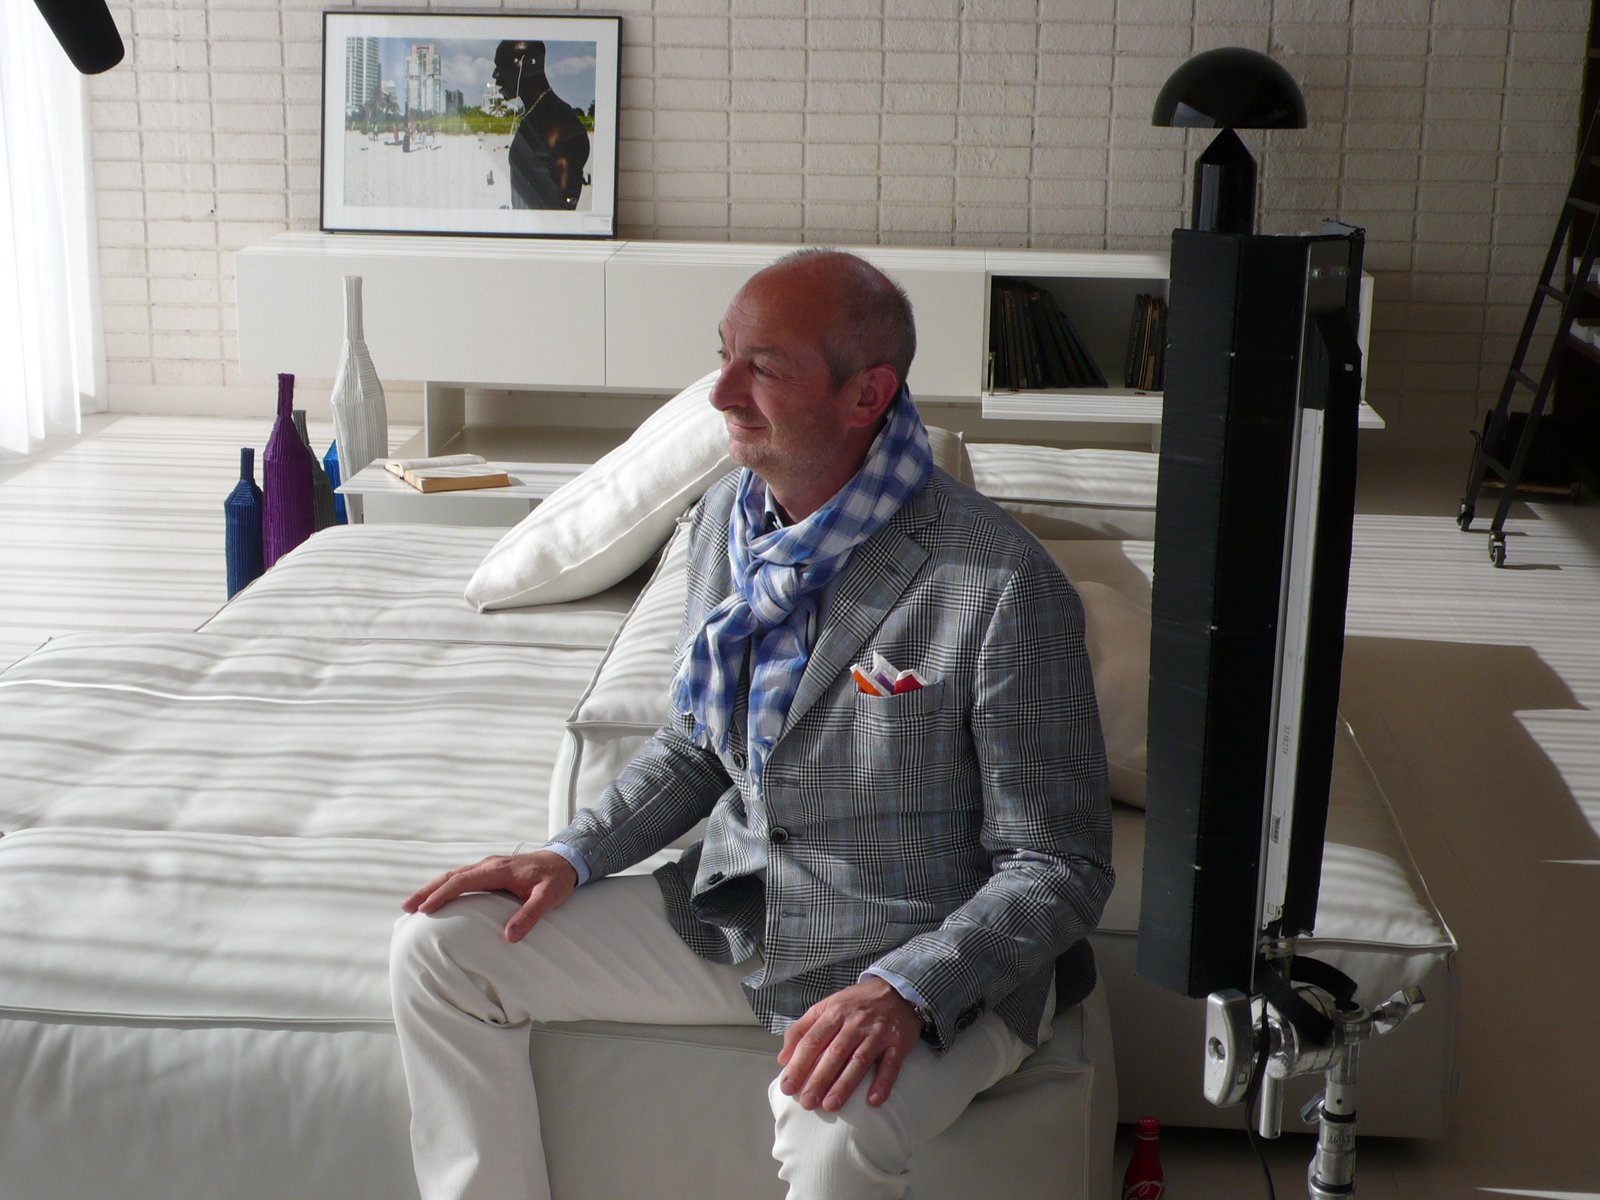 Lissoni is interviewed on his Extrasoft modular sofa in white, defined by its geometric configuration and irregular contours.  Photo 1 of 7 in 10 Minutes With Piero Lissoni